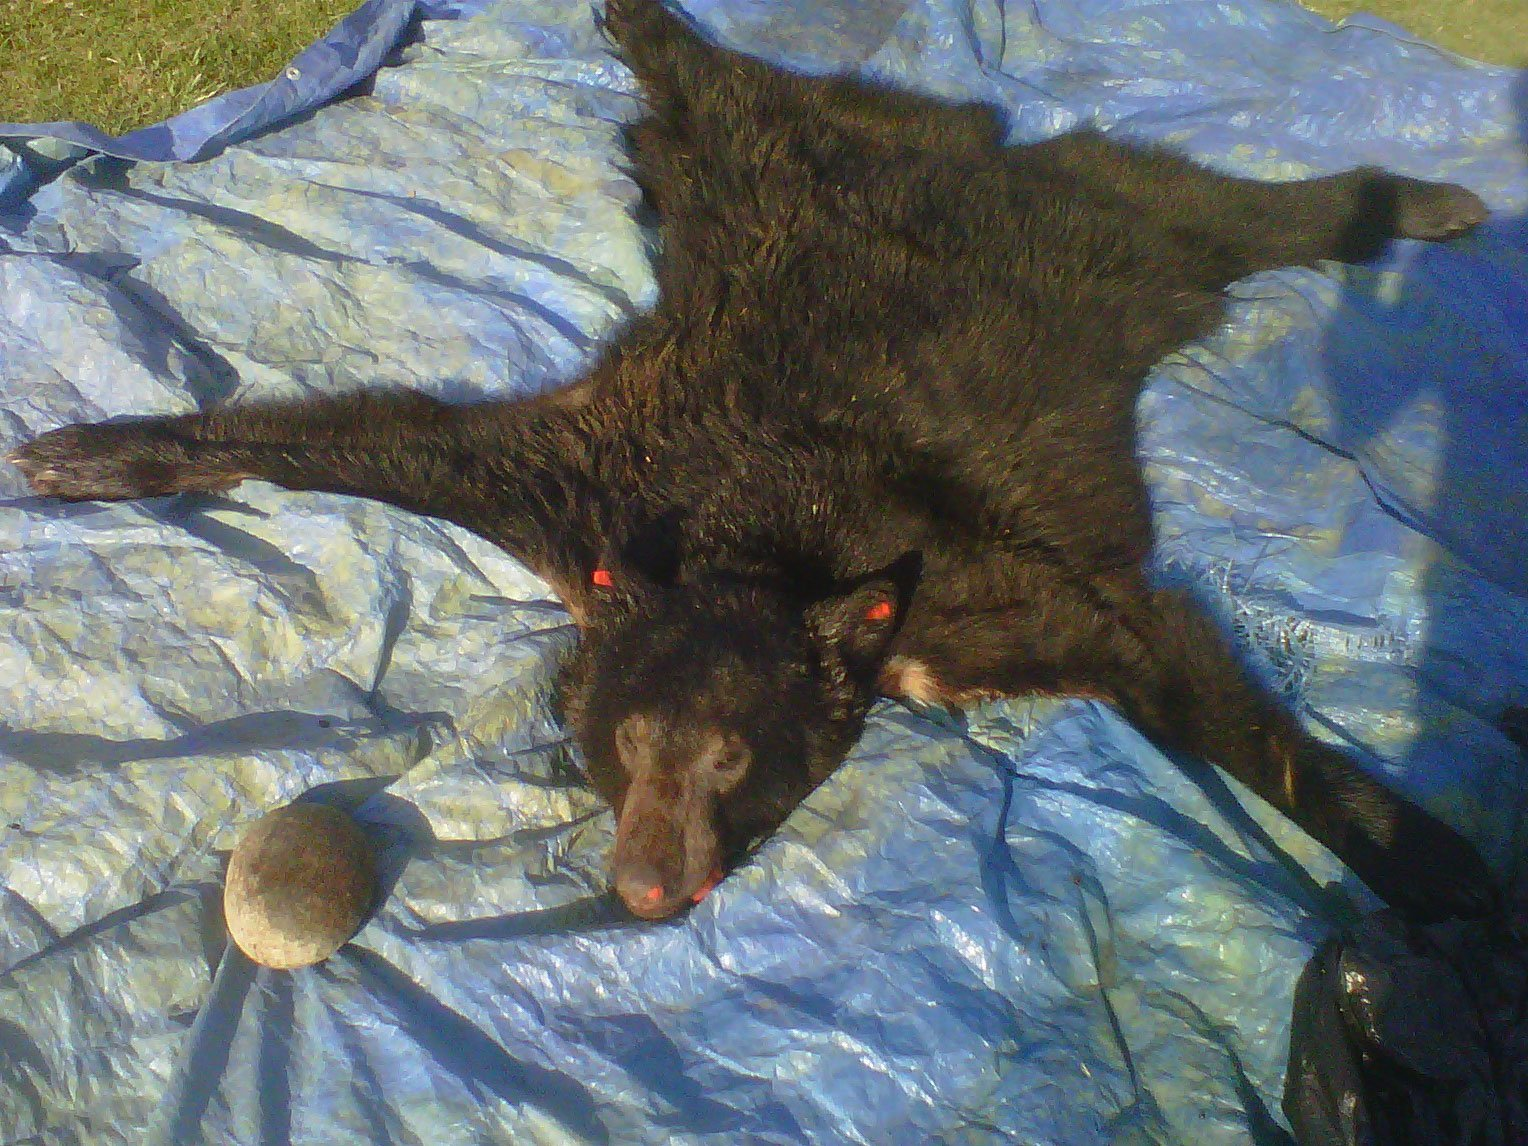 A photo of the bear skin - courtesy Jeffrey Jenkins